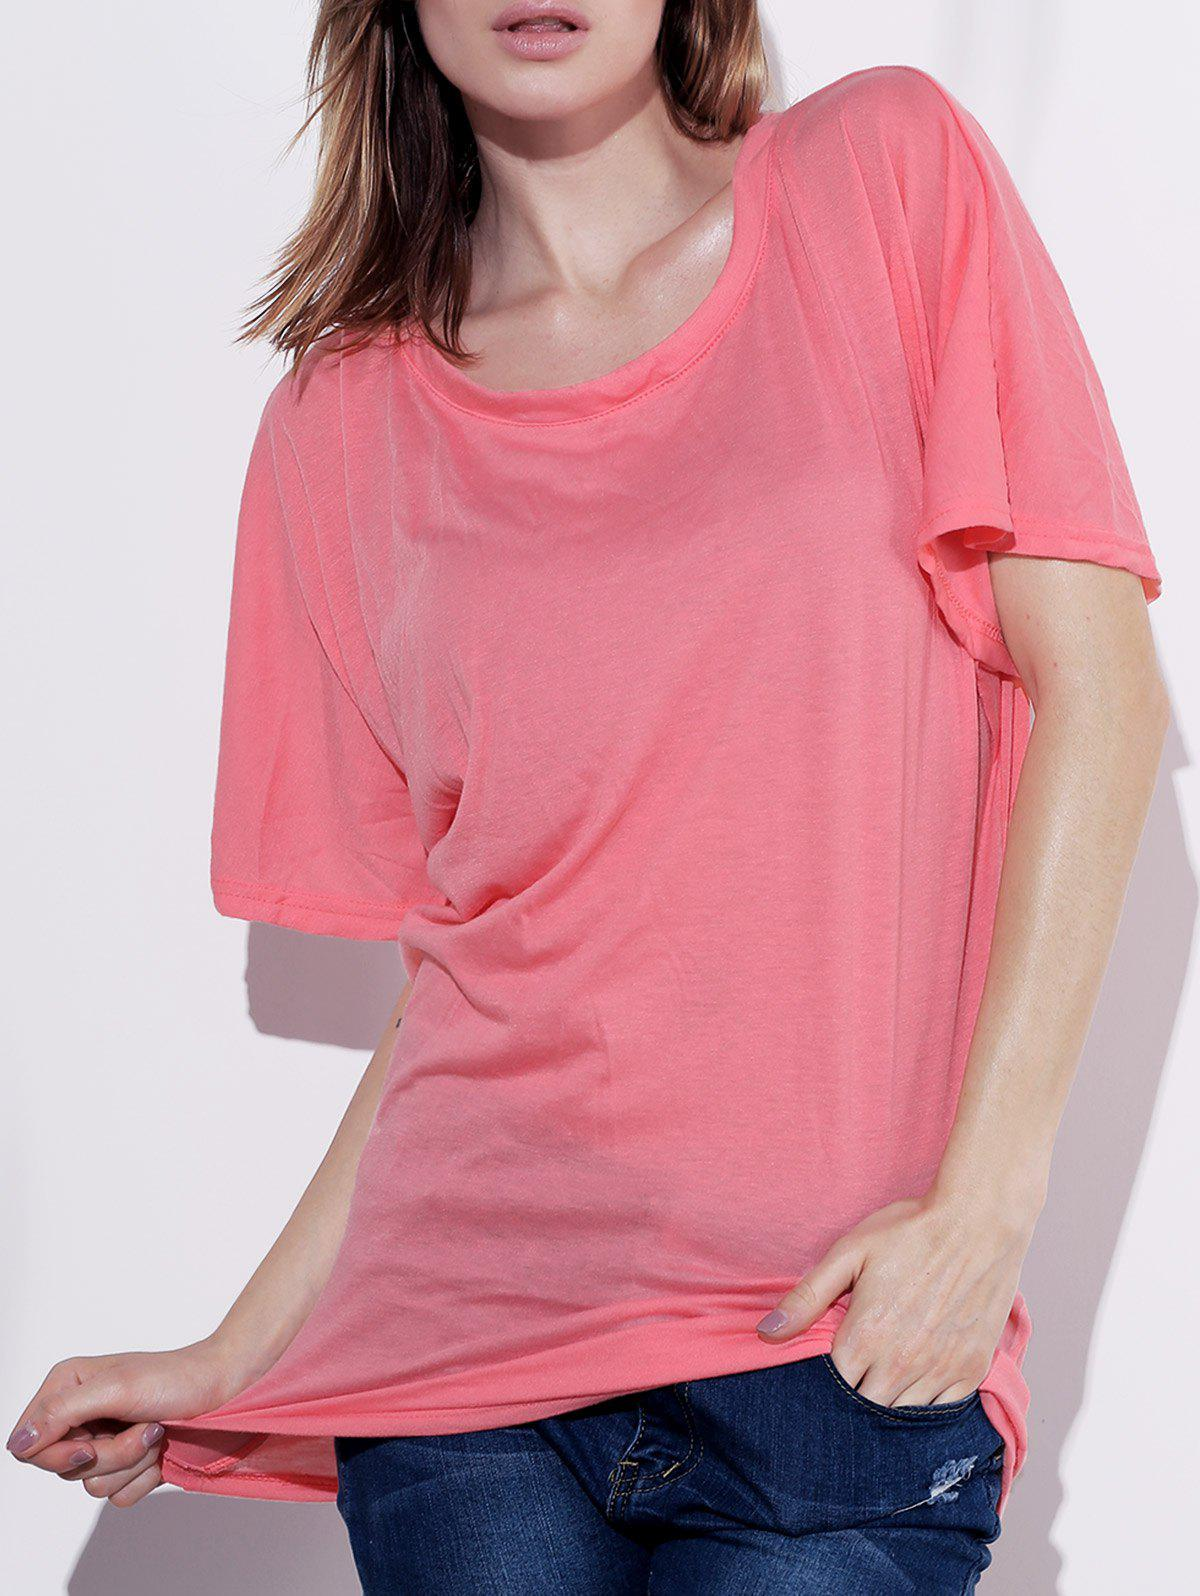 Stylish Boat Neck Short Sleeve Solid Color Women's T-Shirt - PINK XL